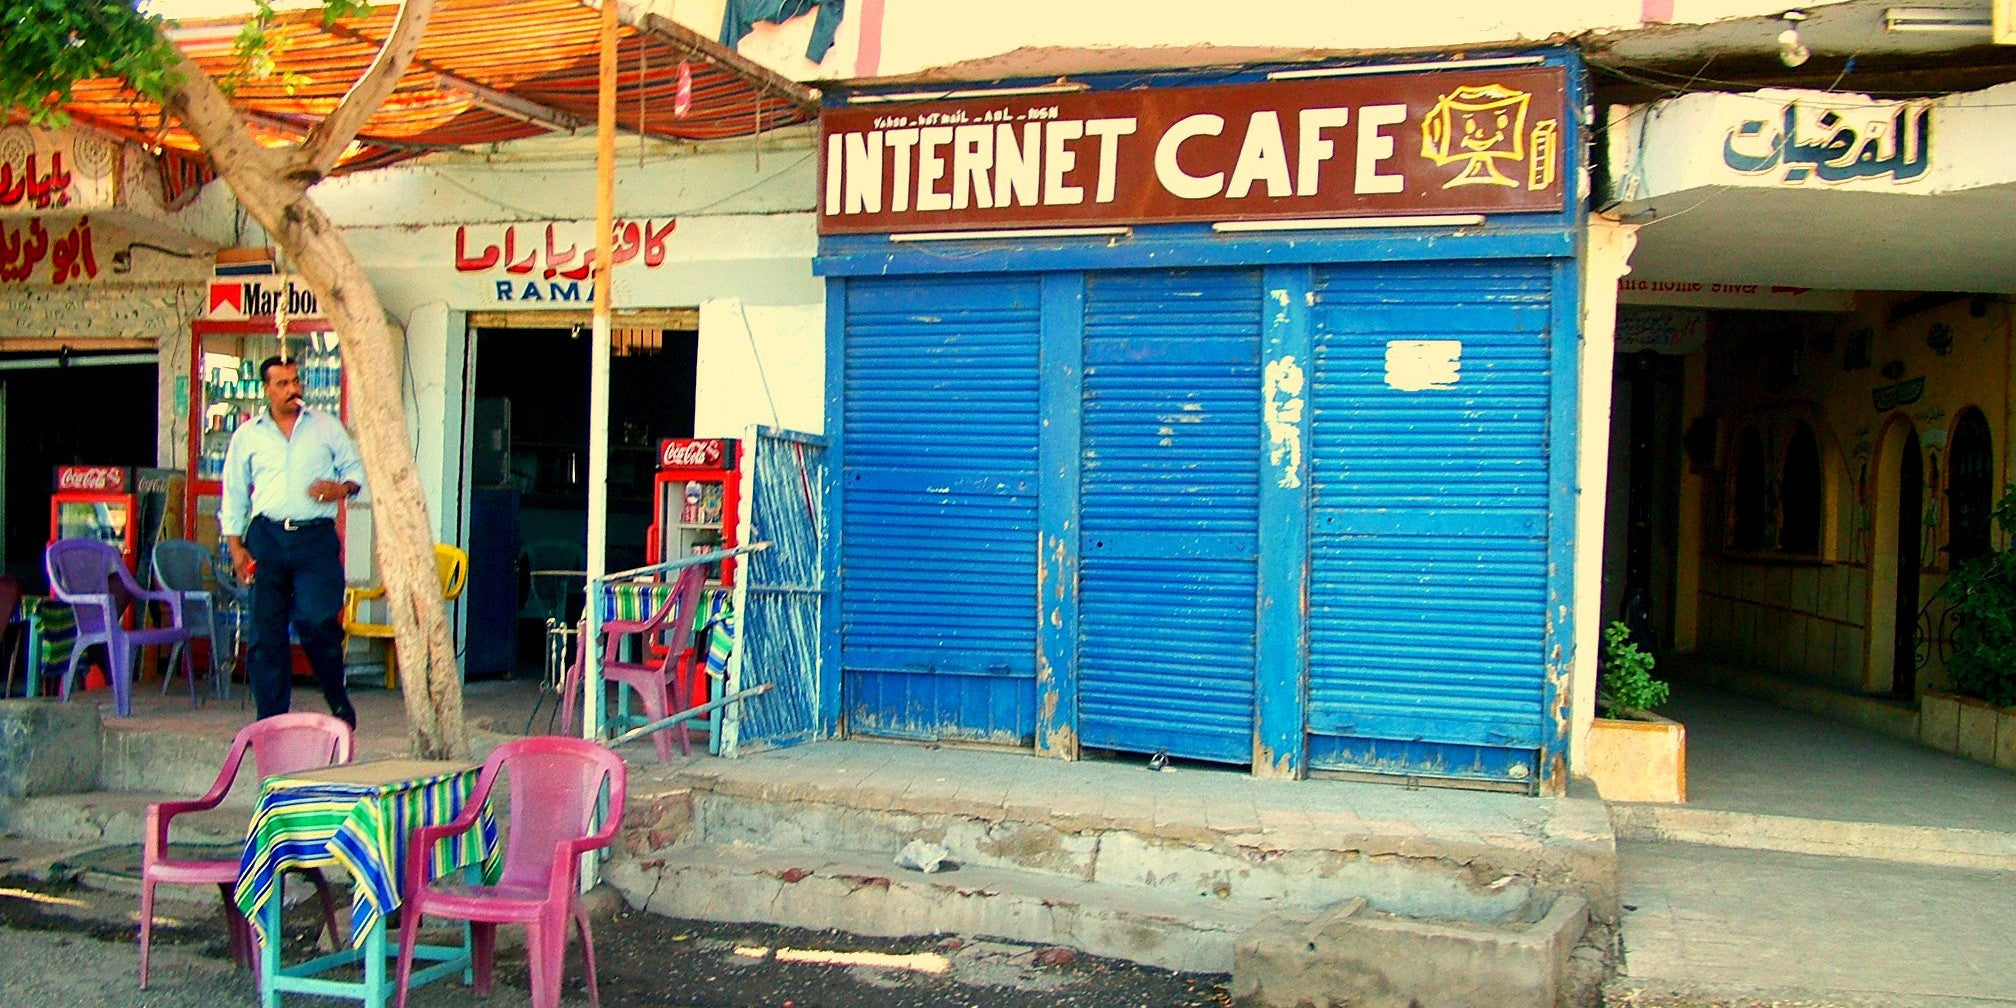 4 Billion People Are Still Without Internet